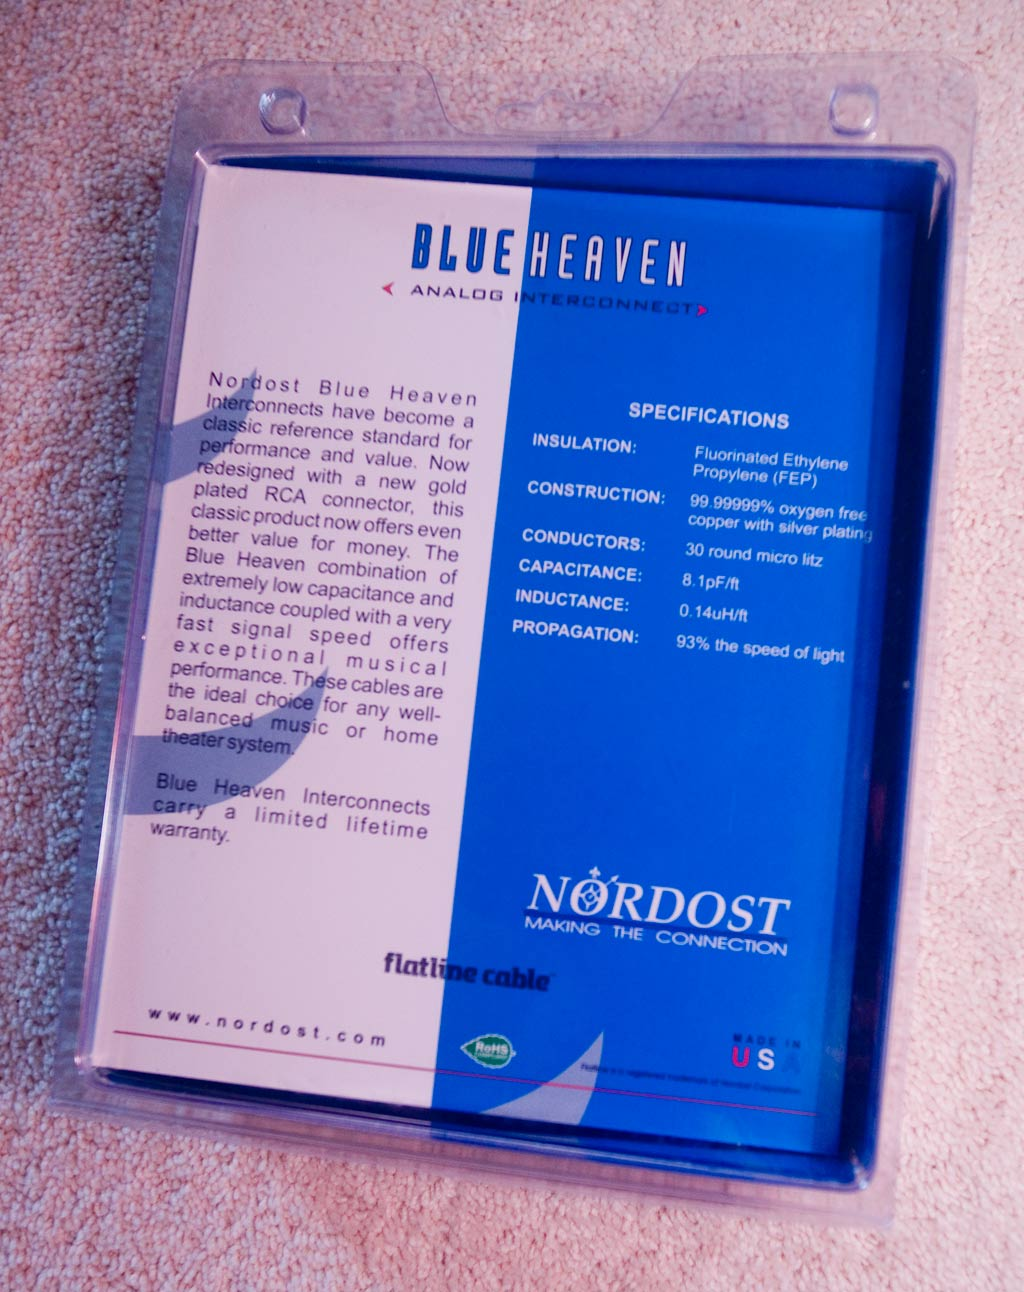 IMG_8612-nordost-blue-heaven-interconnect-rear-2